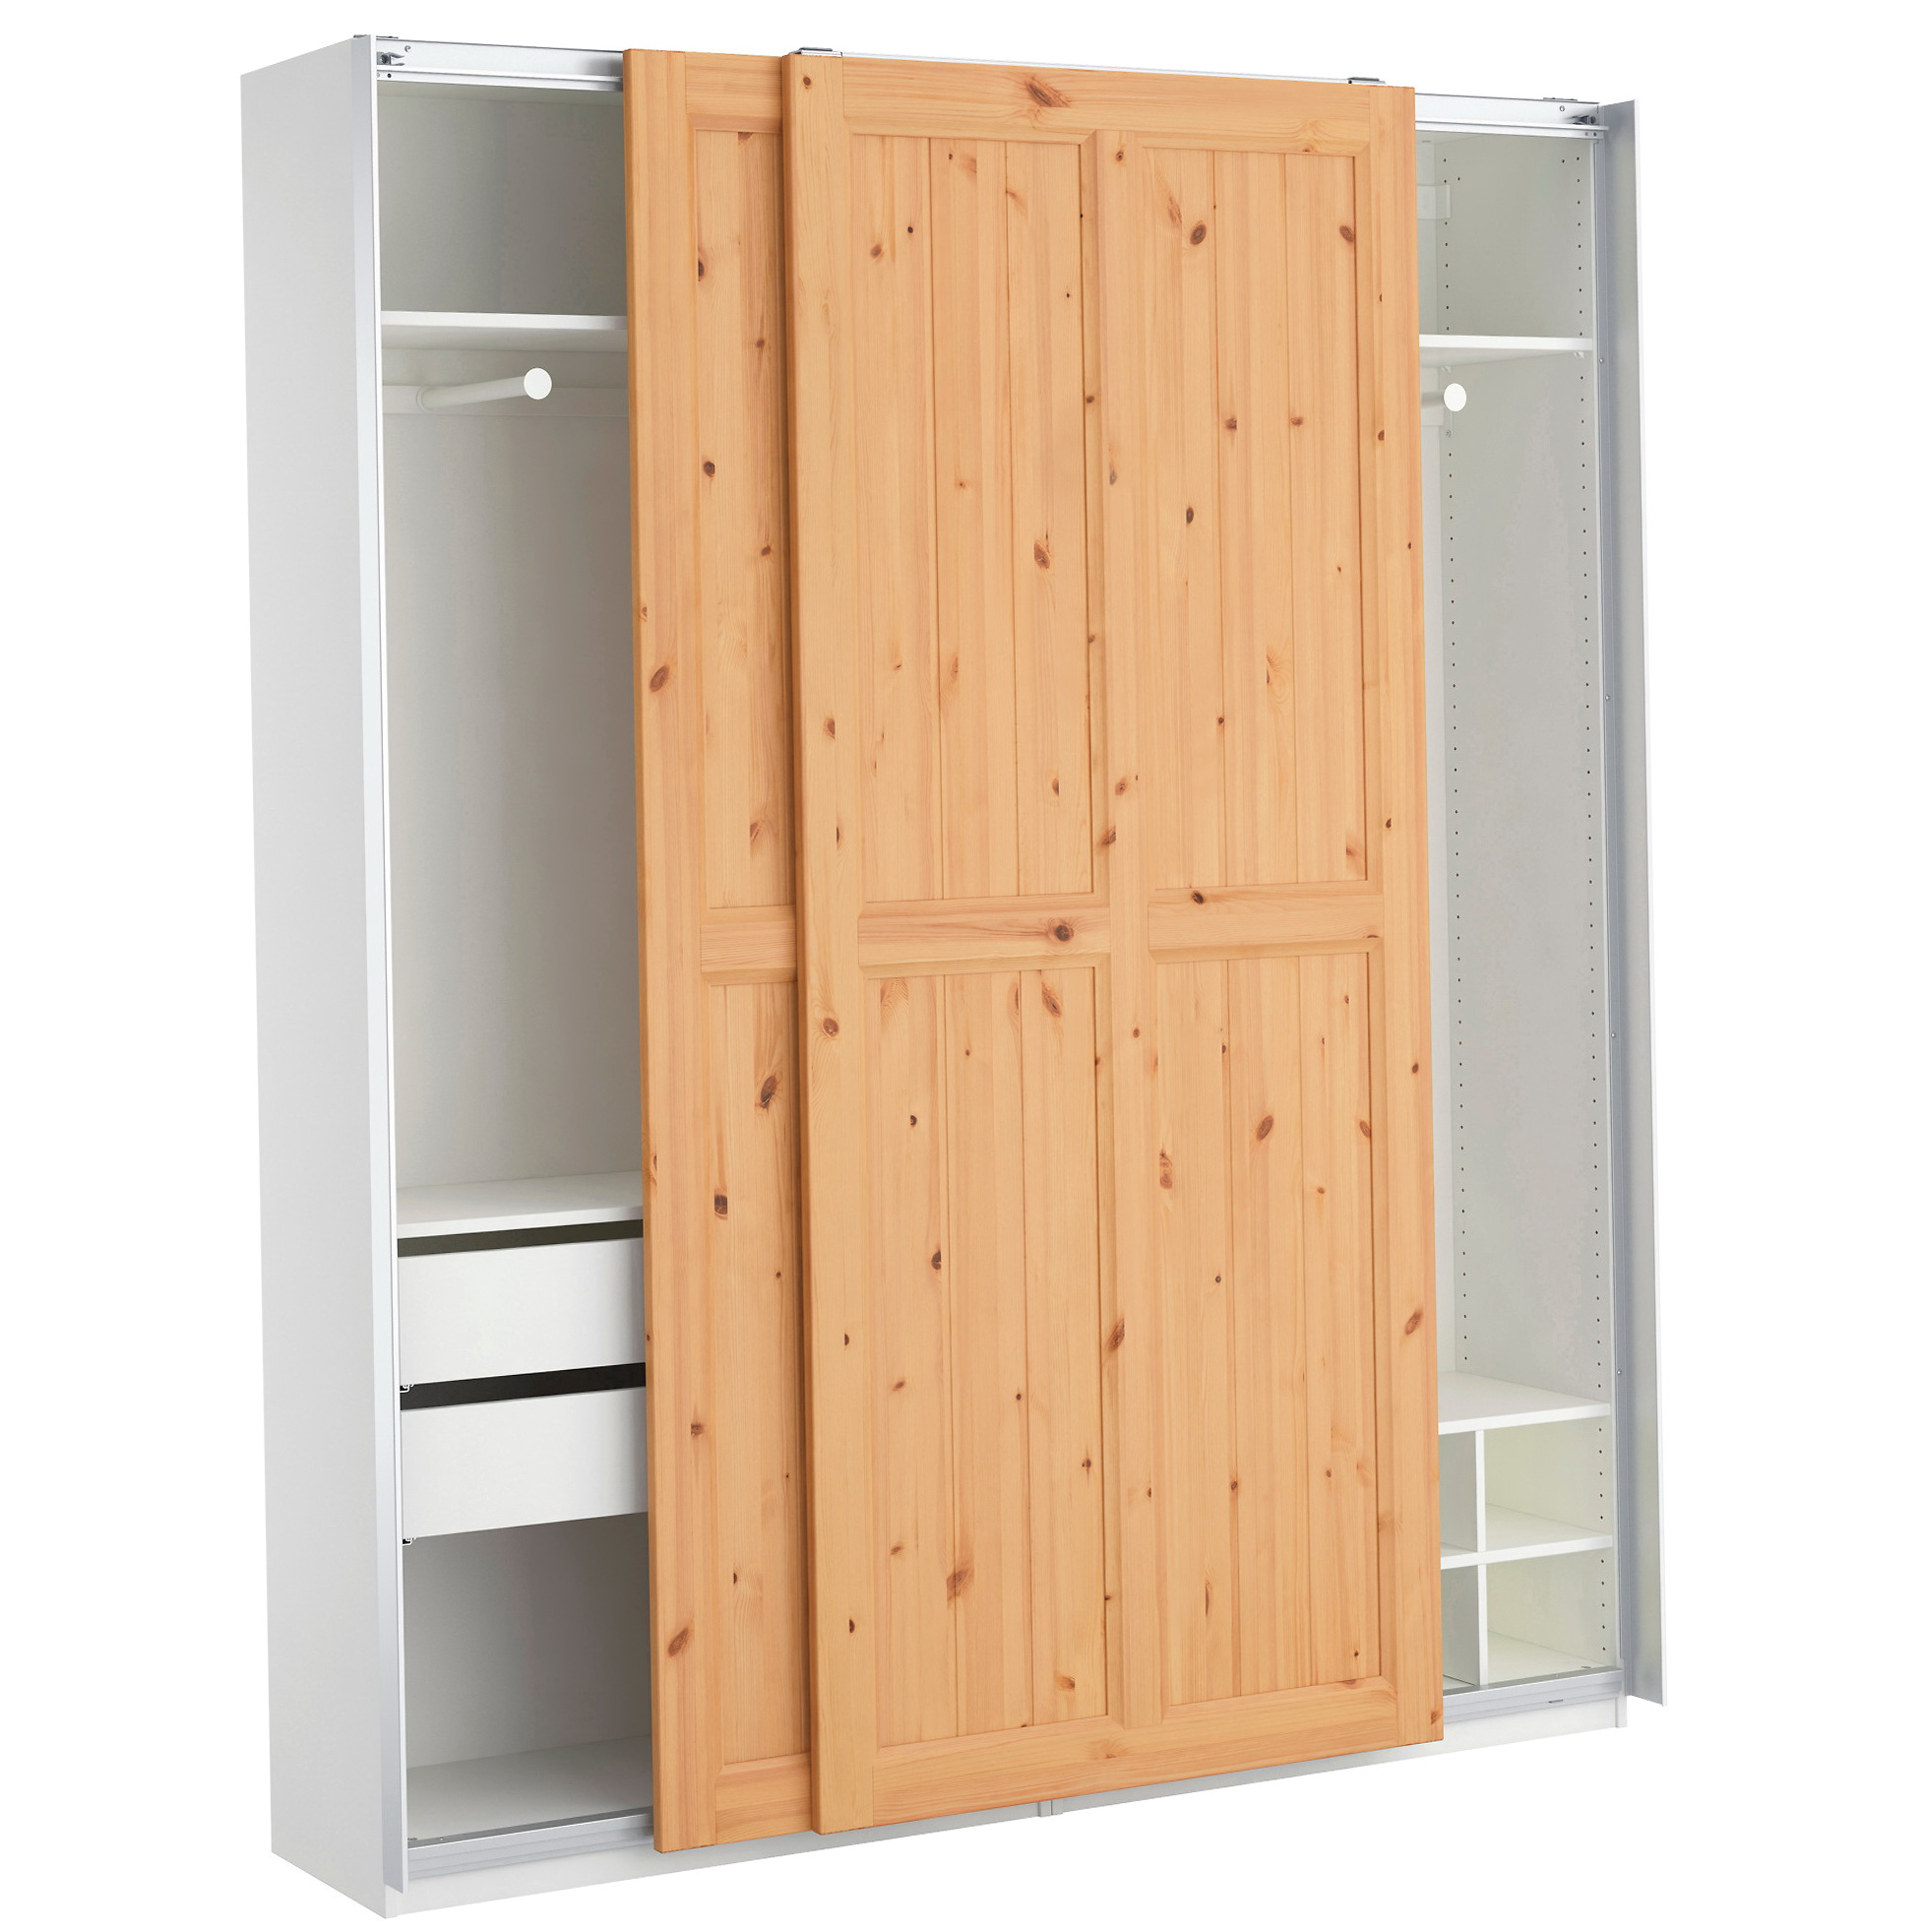 Wooden Wardrobe Closet Walmart Home Design Ideas